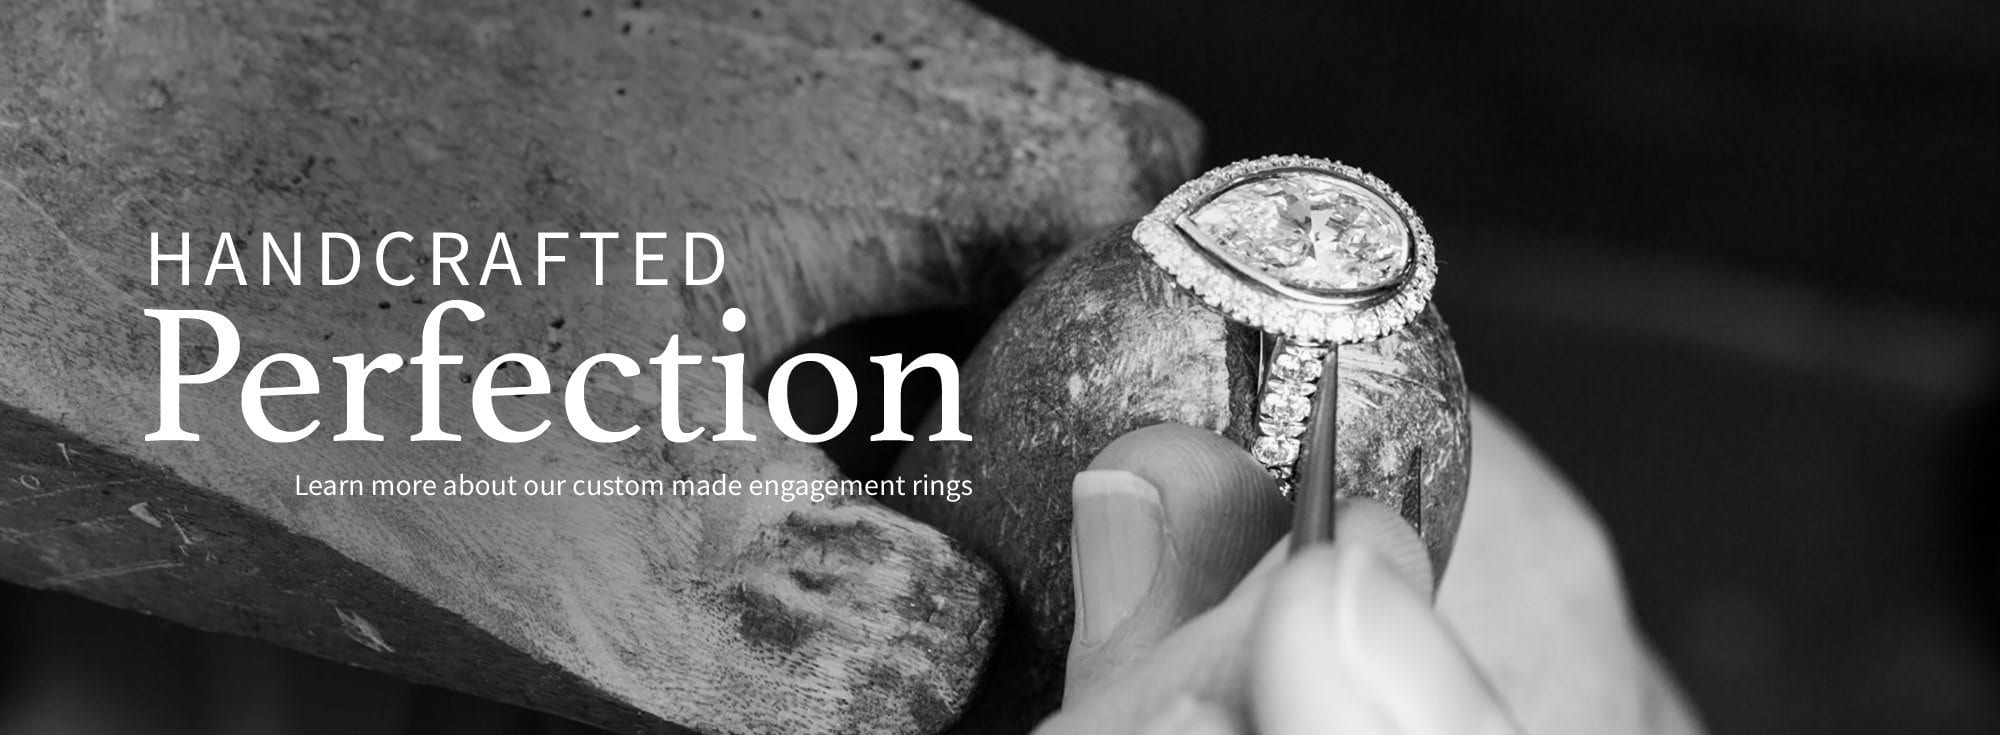 Handcrafted Perfection - Learn more about our custom made engagement rings.